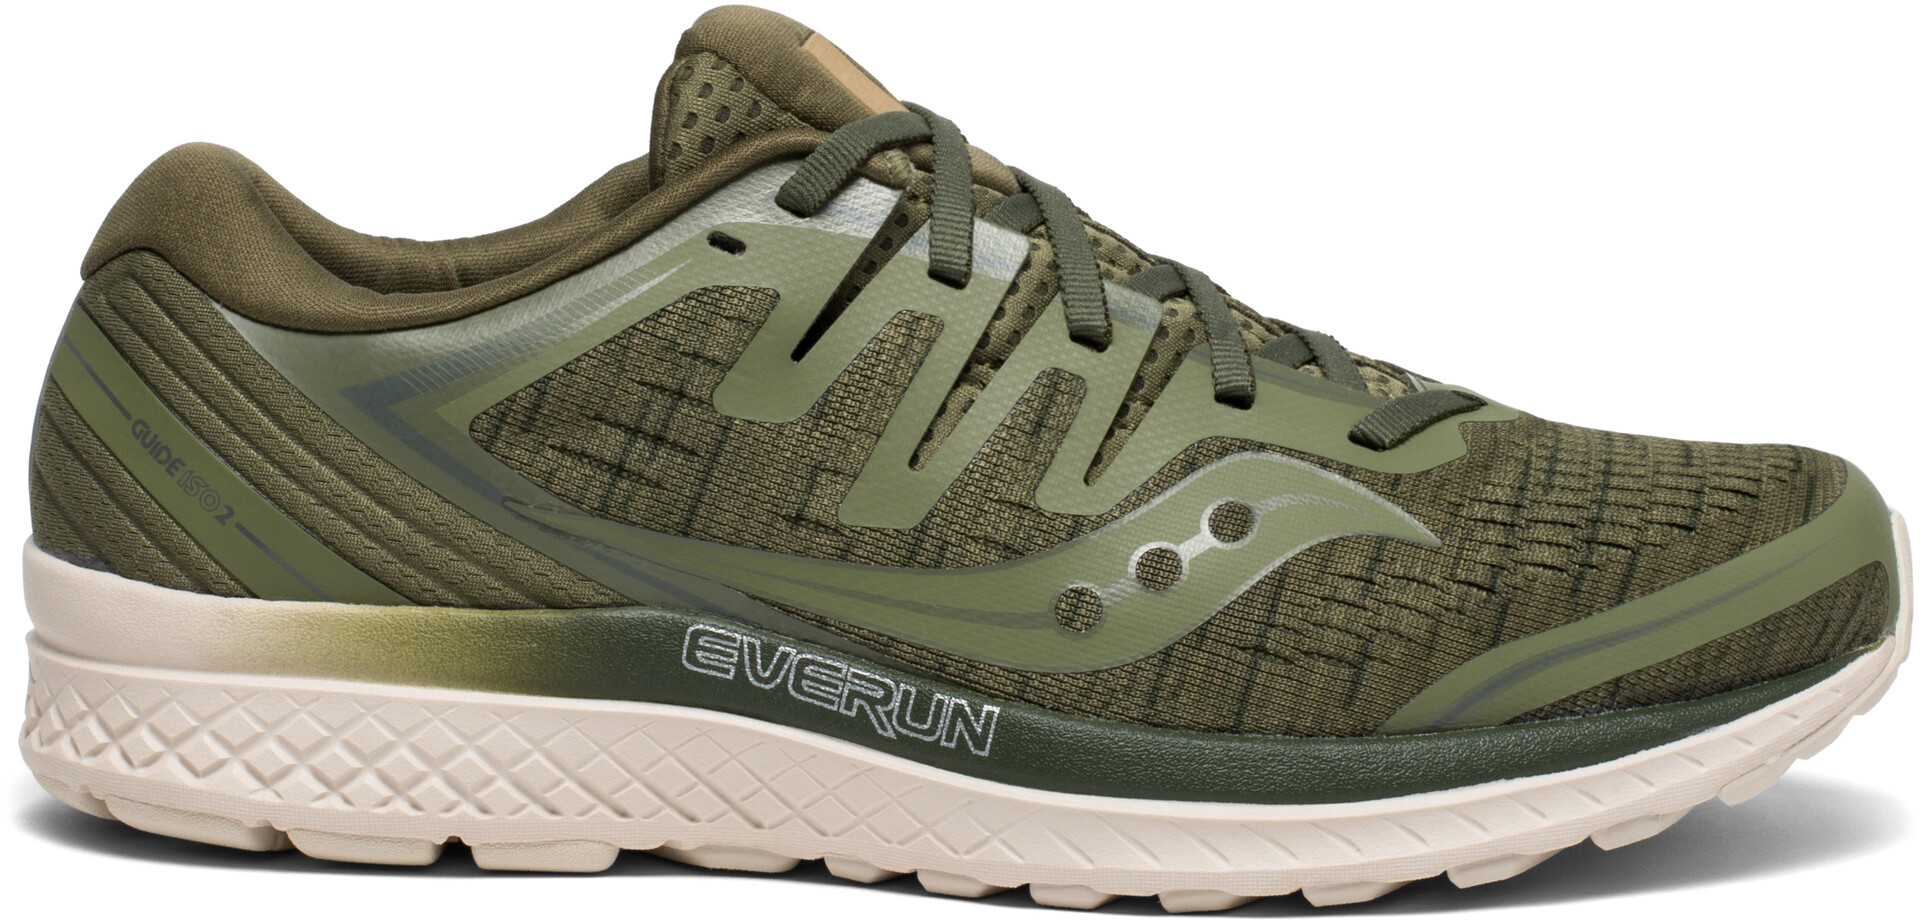 Saucony Chaussures Iso Boutique Guide Olive Homme De Running 2 HrrOqtT b457969dd600